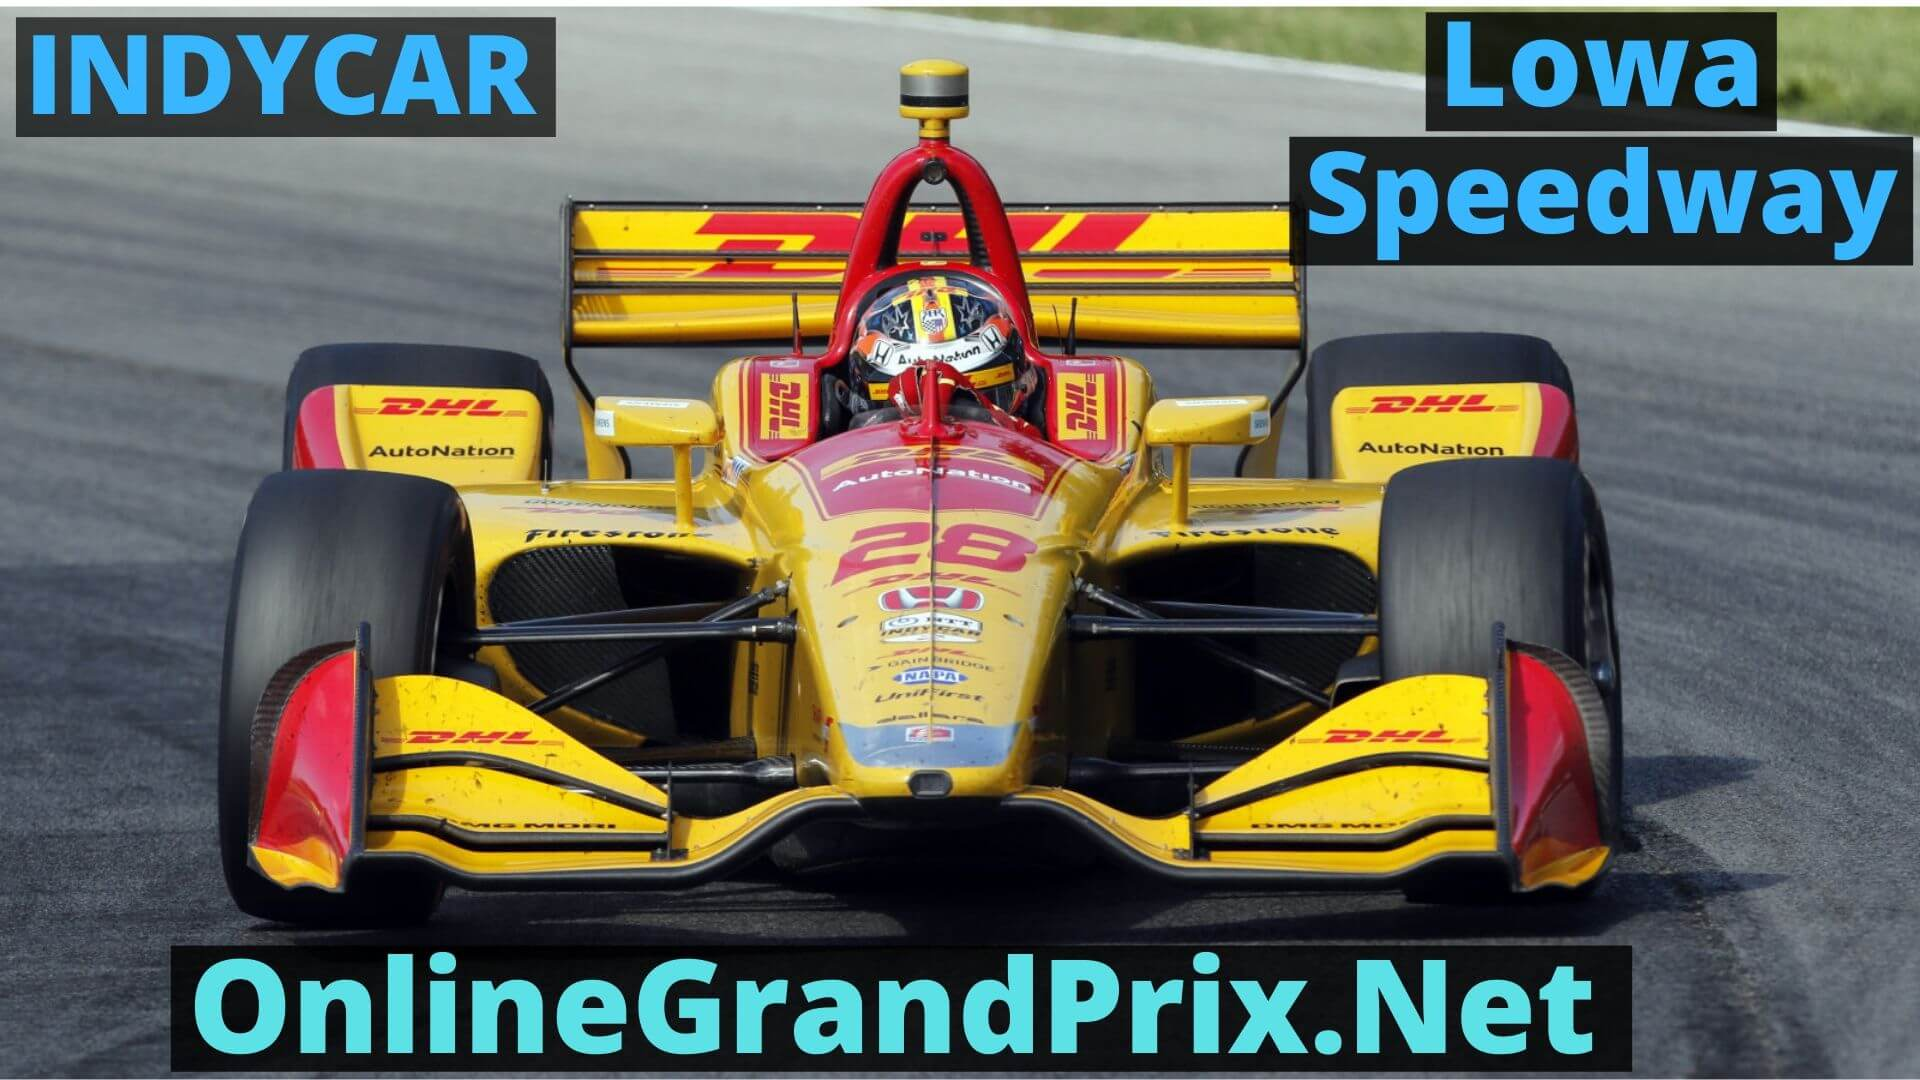 Iowa 300 Live Stream 2020 | Indycar